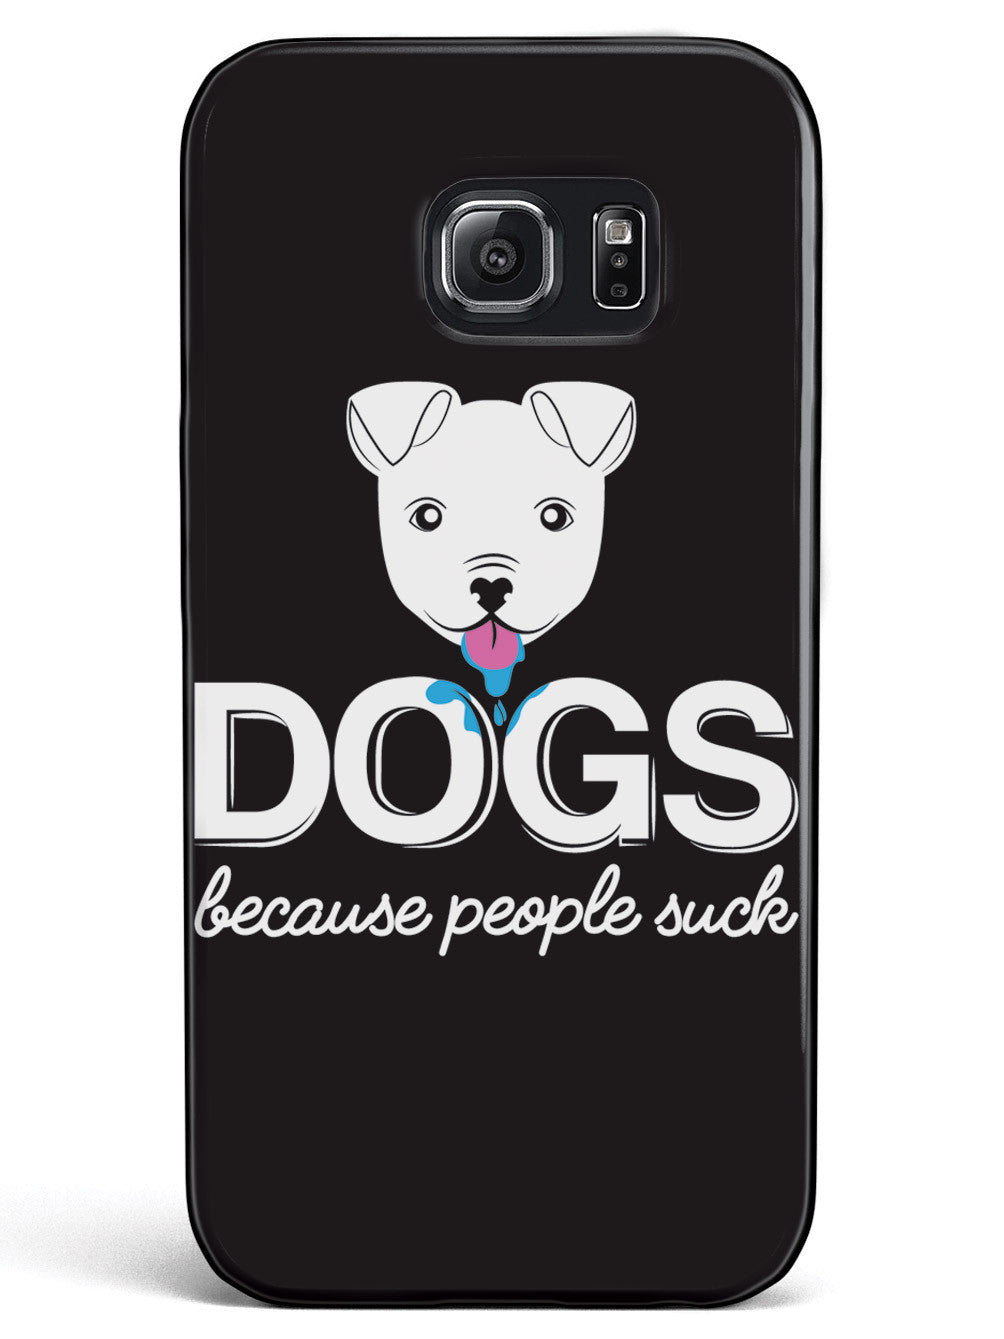 DOGS - Because People Suck Case